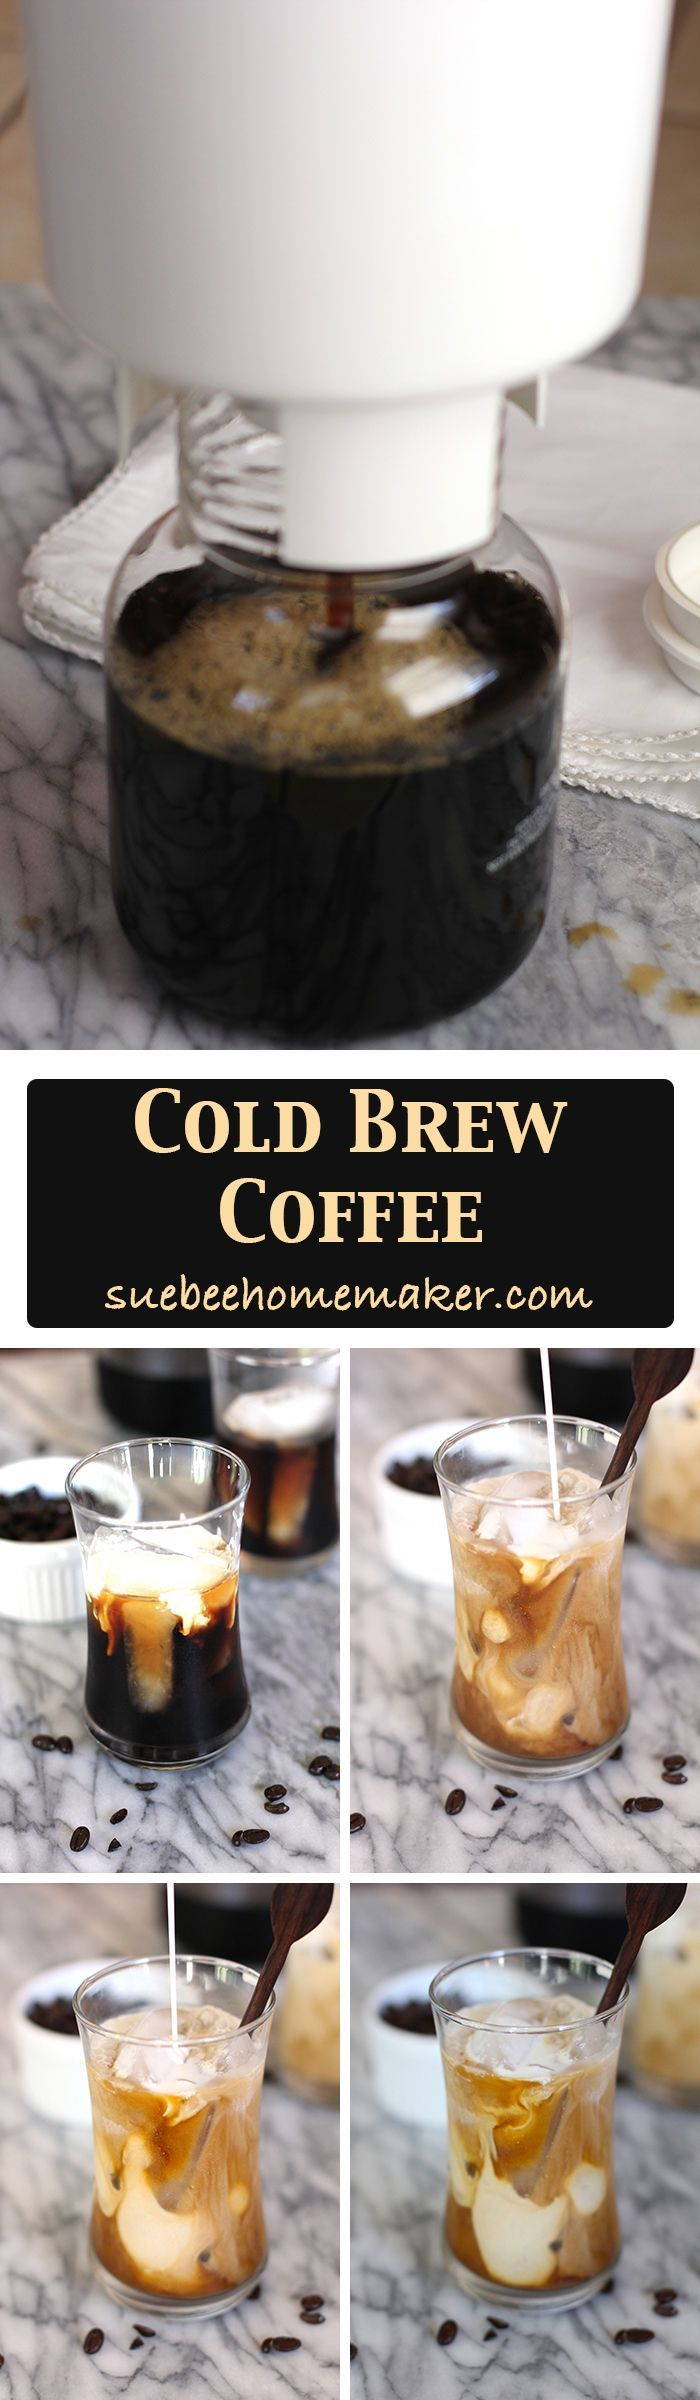 Cold Brew Coffee uses a patented cold brew system, using regular coffee beans to create a super smooth and less acidic coffee!